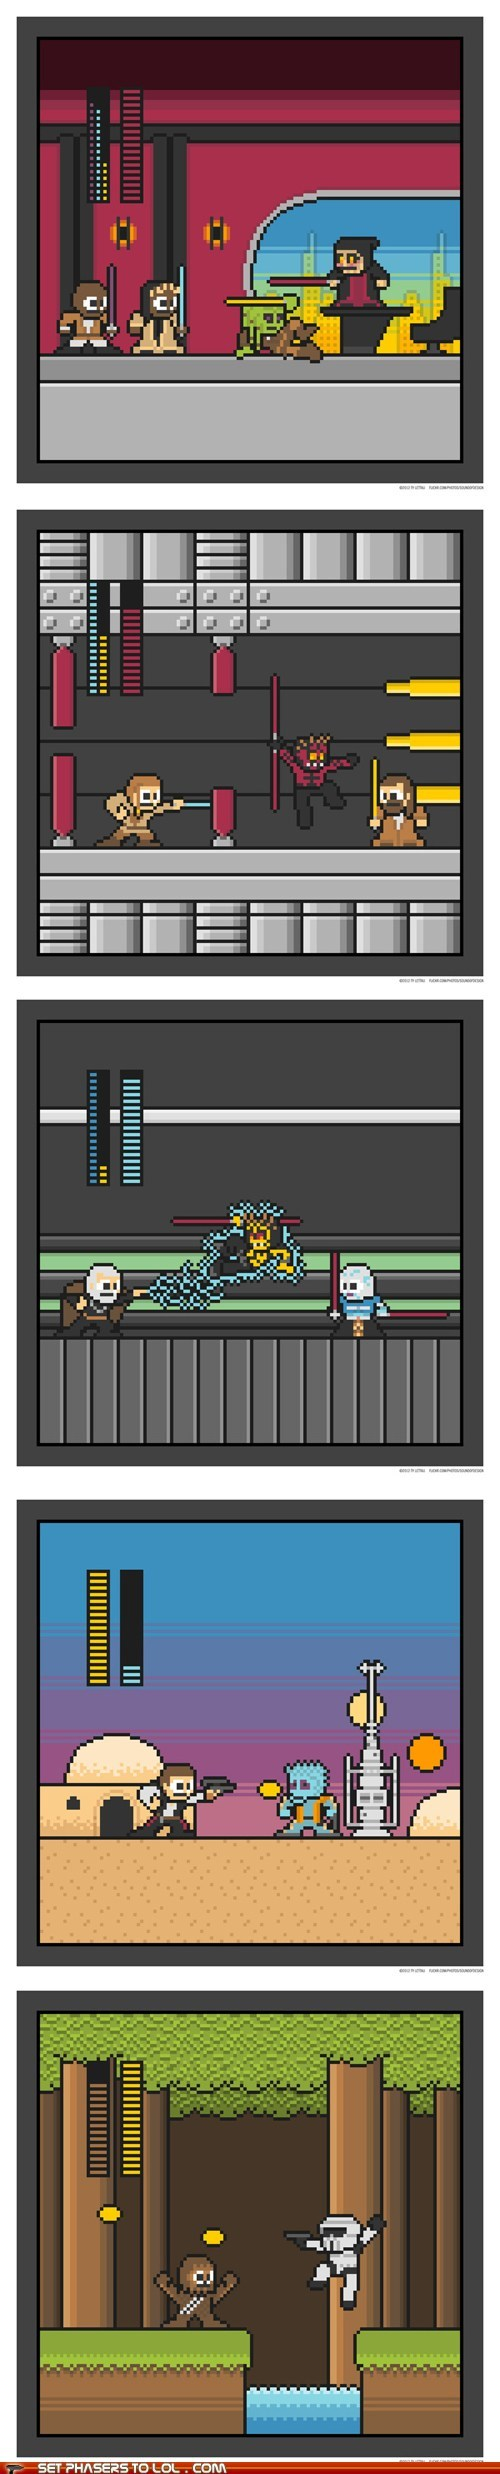 8 bit,boss battles,FanArt,mashup,mega man,NES,star wars